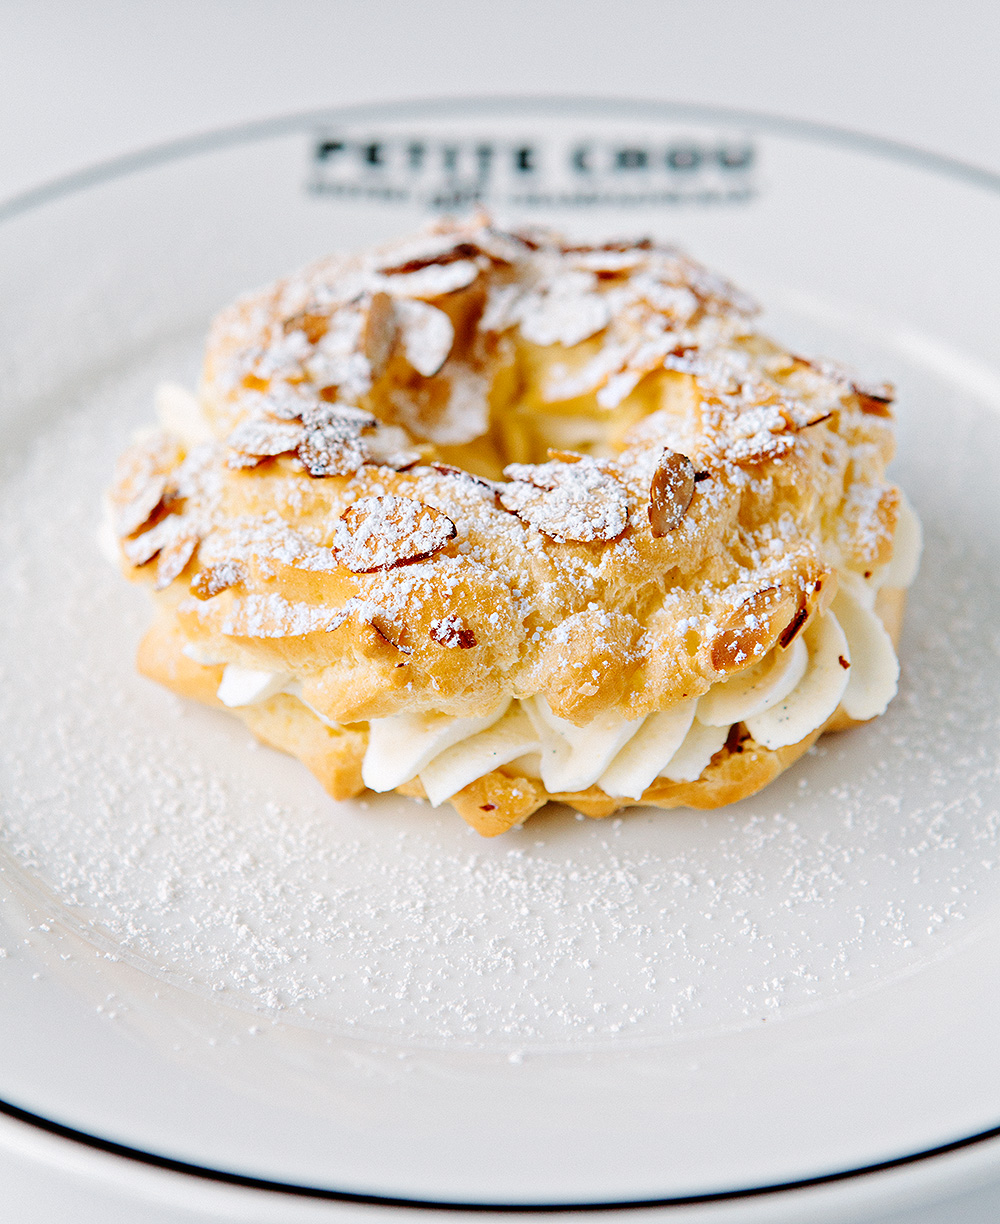 ParisBrestSm